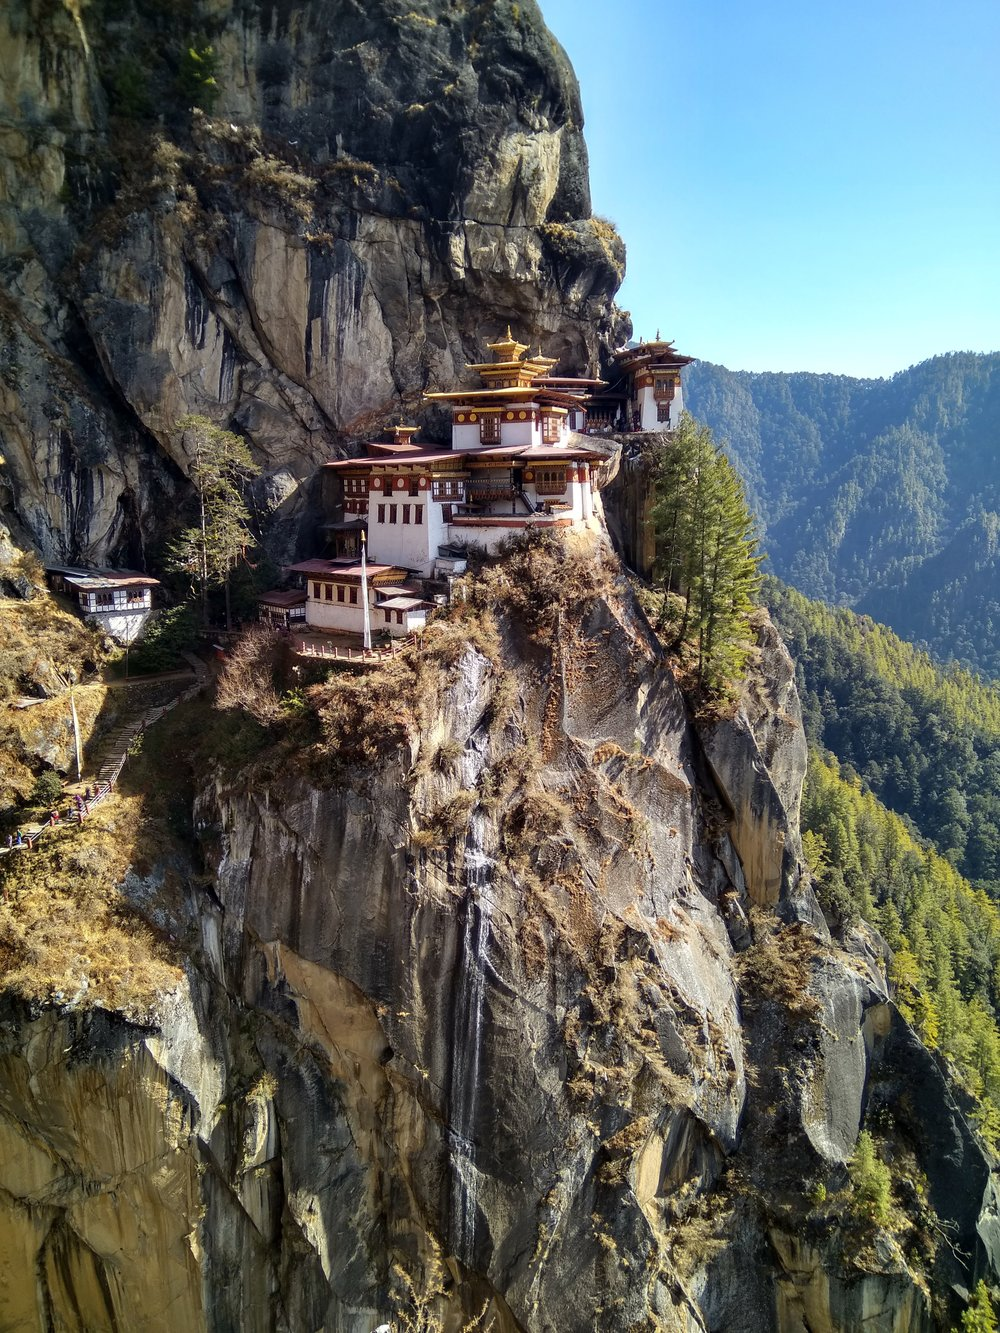 Taktsang Monastery or Tiger's Nest